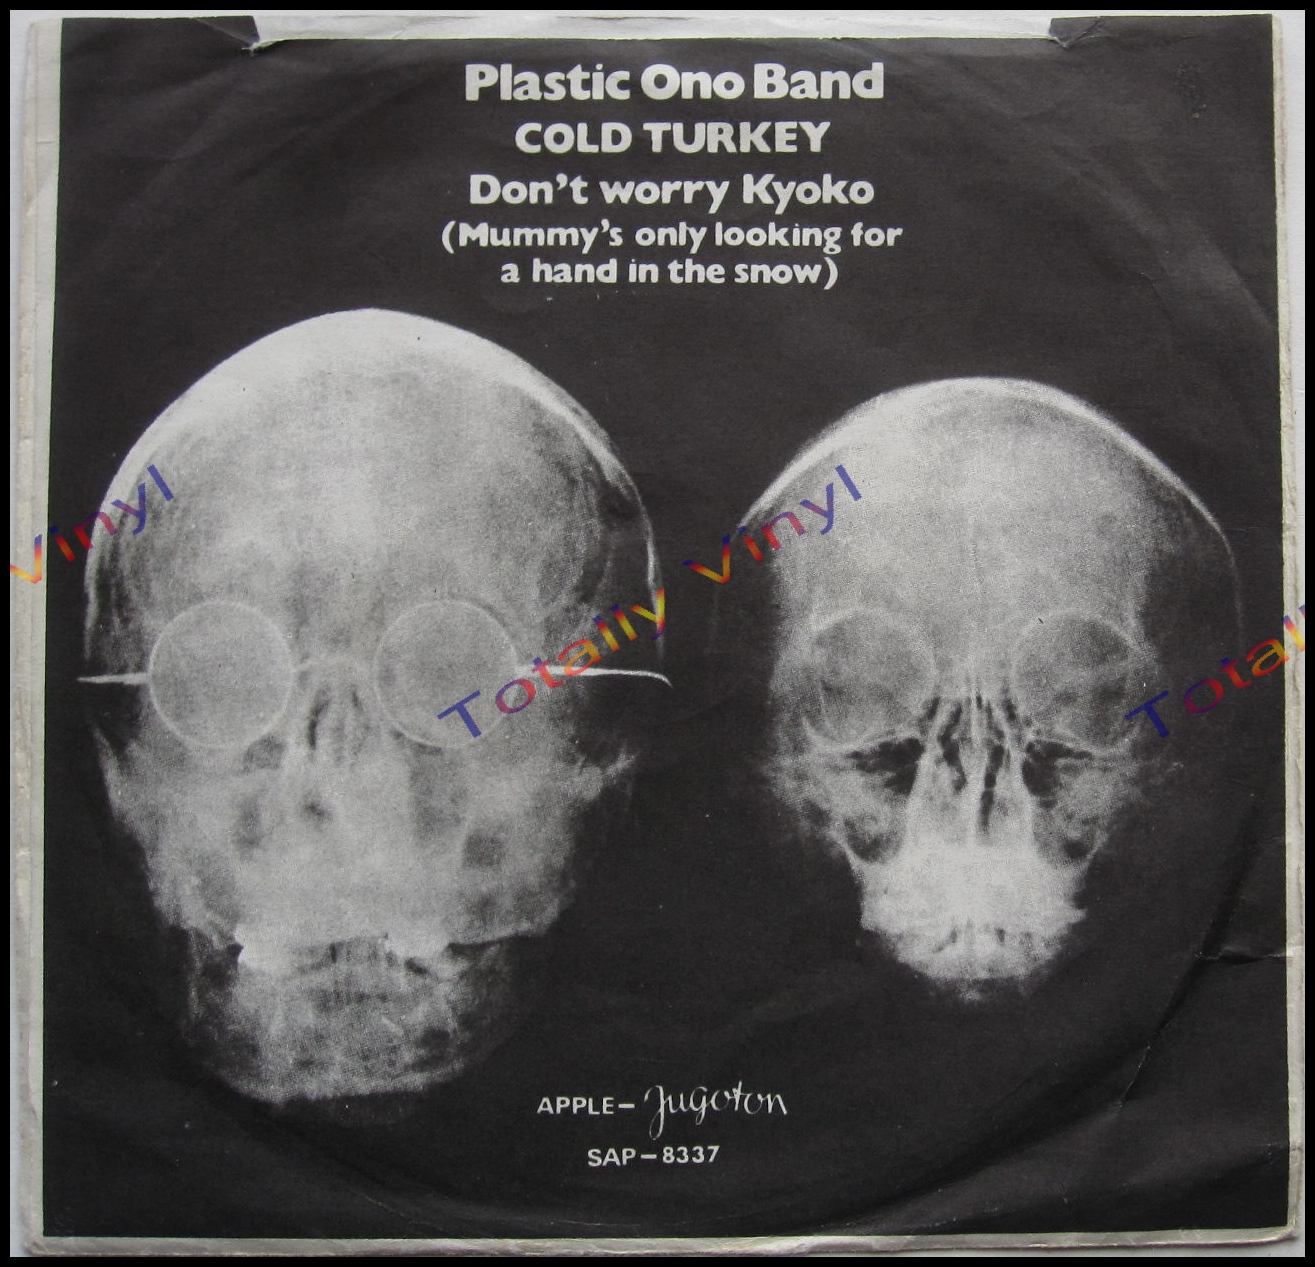 Plastic Ono Band Cold Turkey